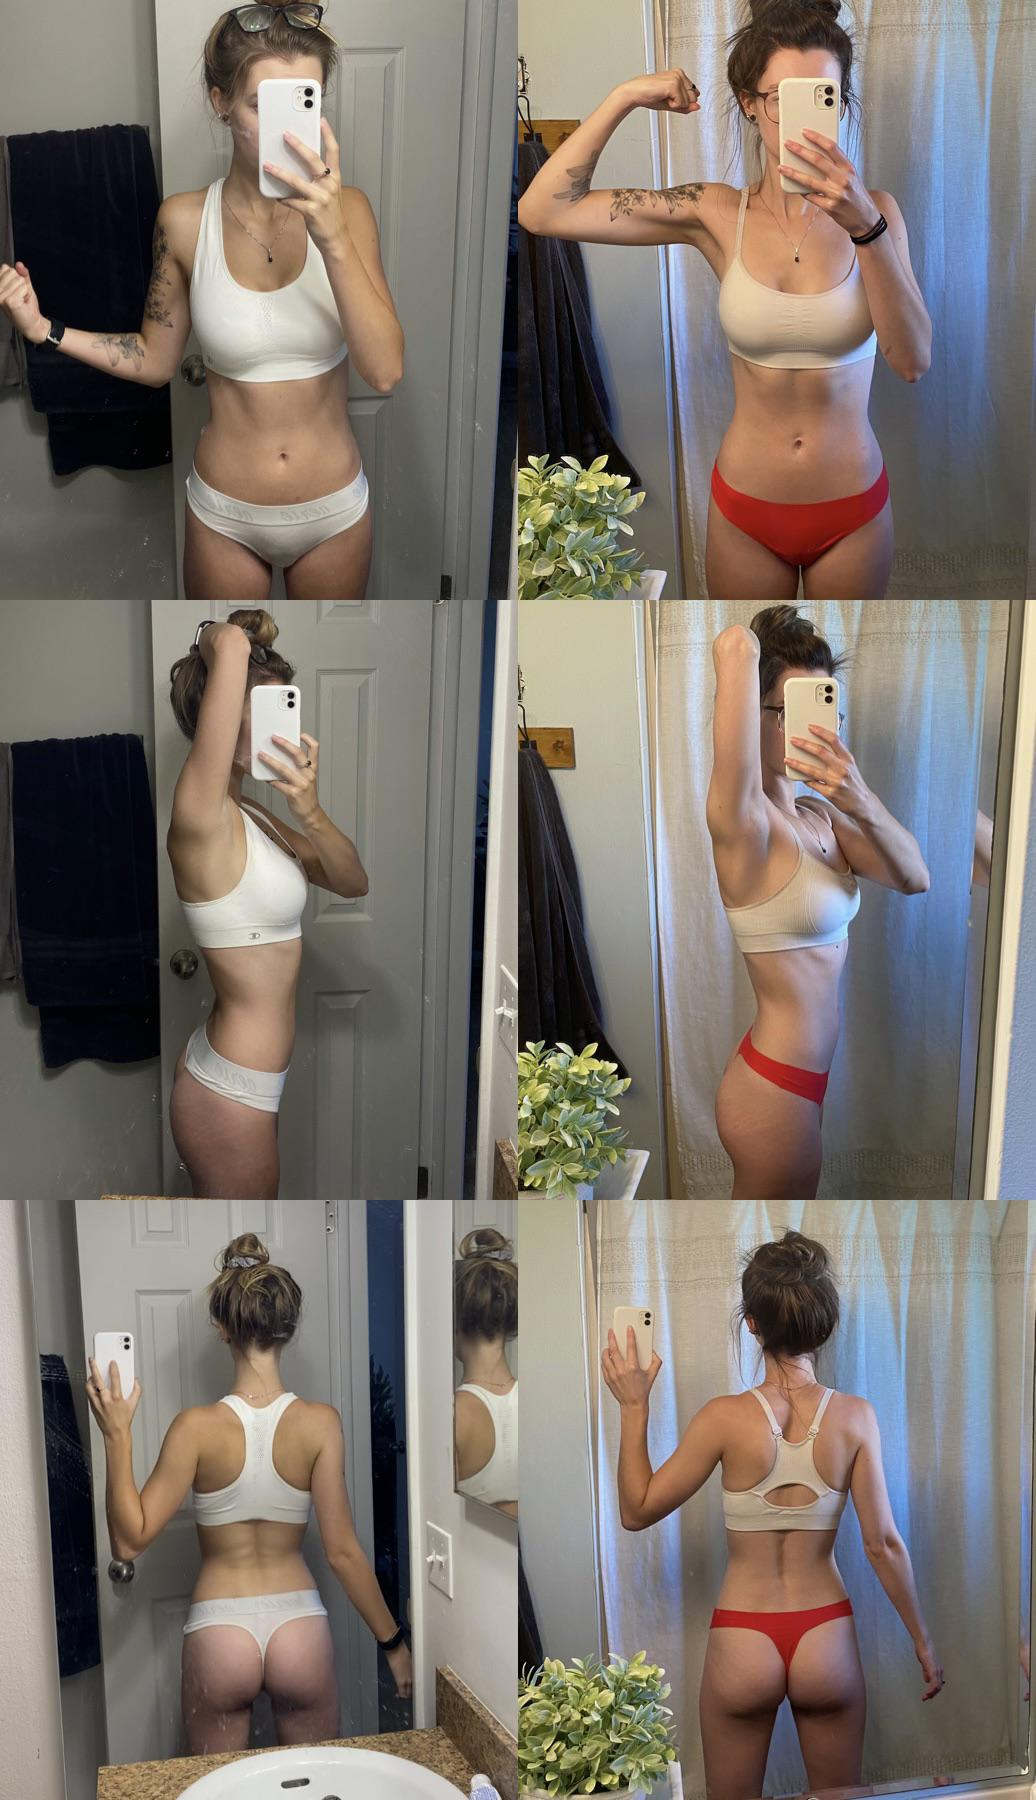 5 lbs Muscle Gain Before and After 5 feet 5 Female 106 lbs to 111 lbs